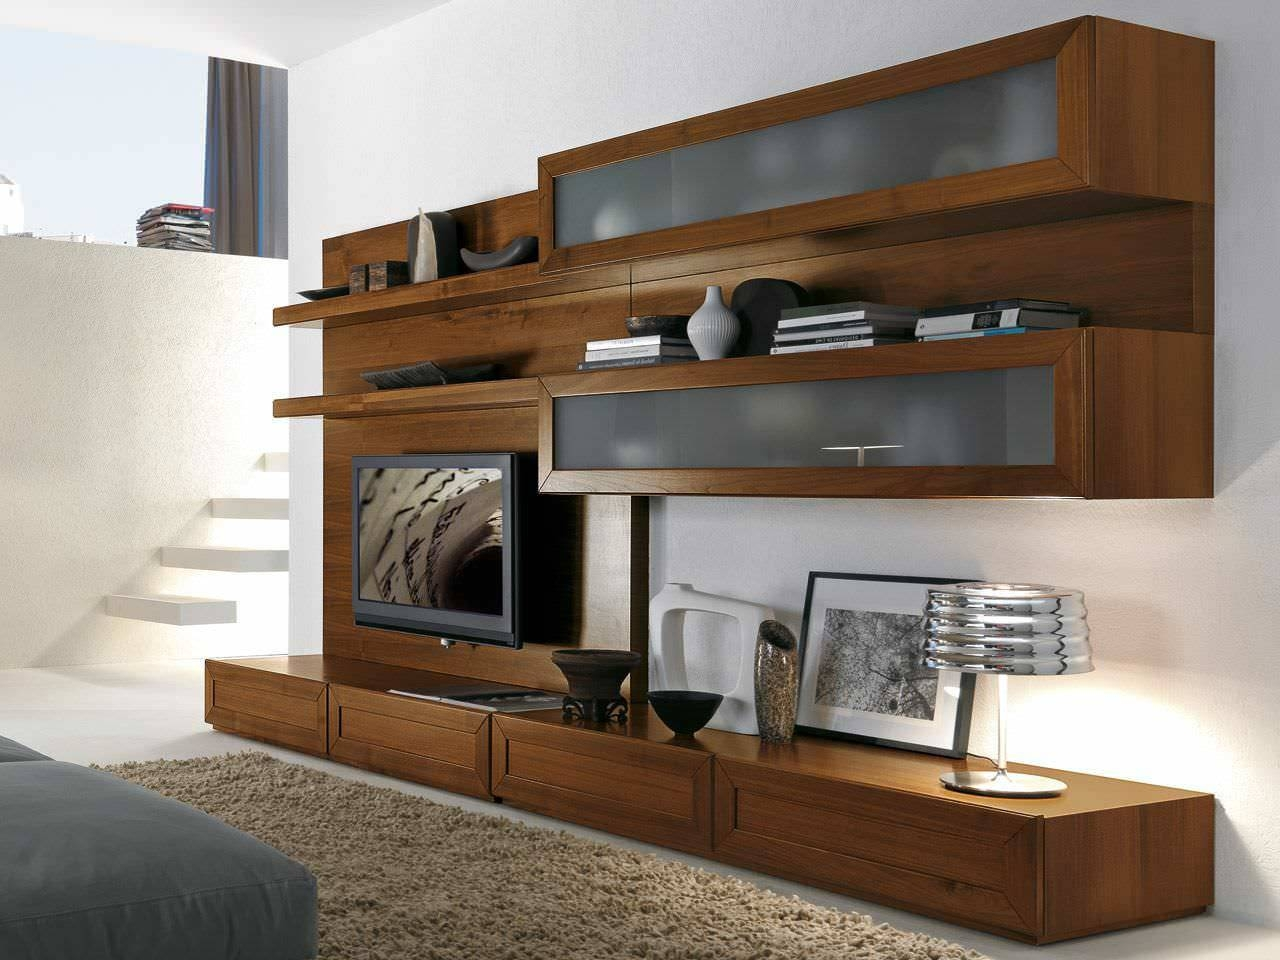 Tv Wall Units Cabinets - Wall Units Design Ideas : Electoral7 throughout Tv Cabinets and Wall Units (Image 7 of 15)